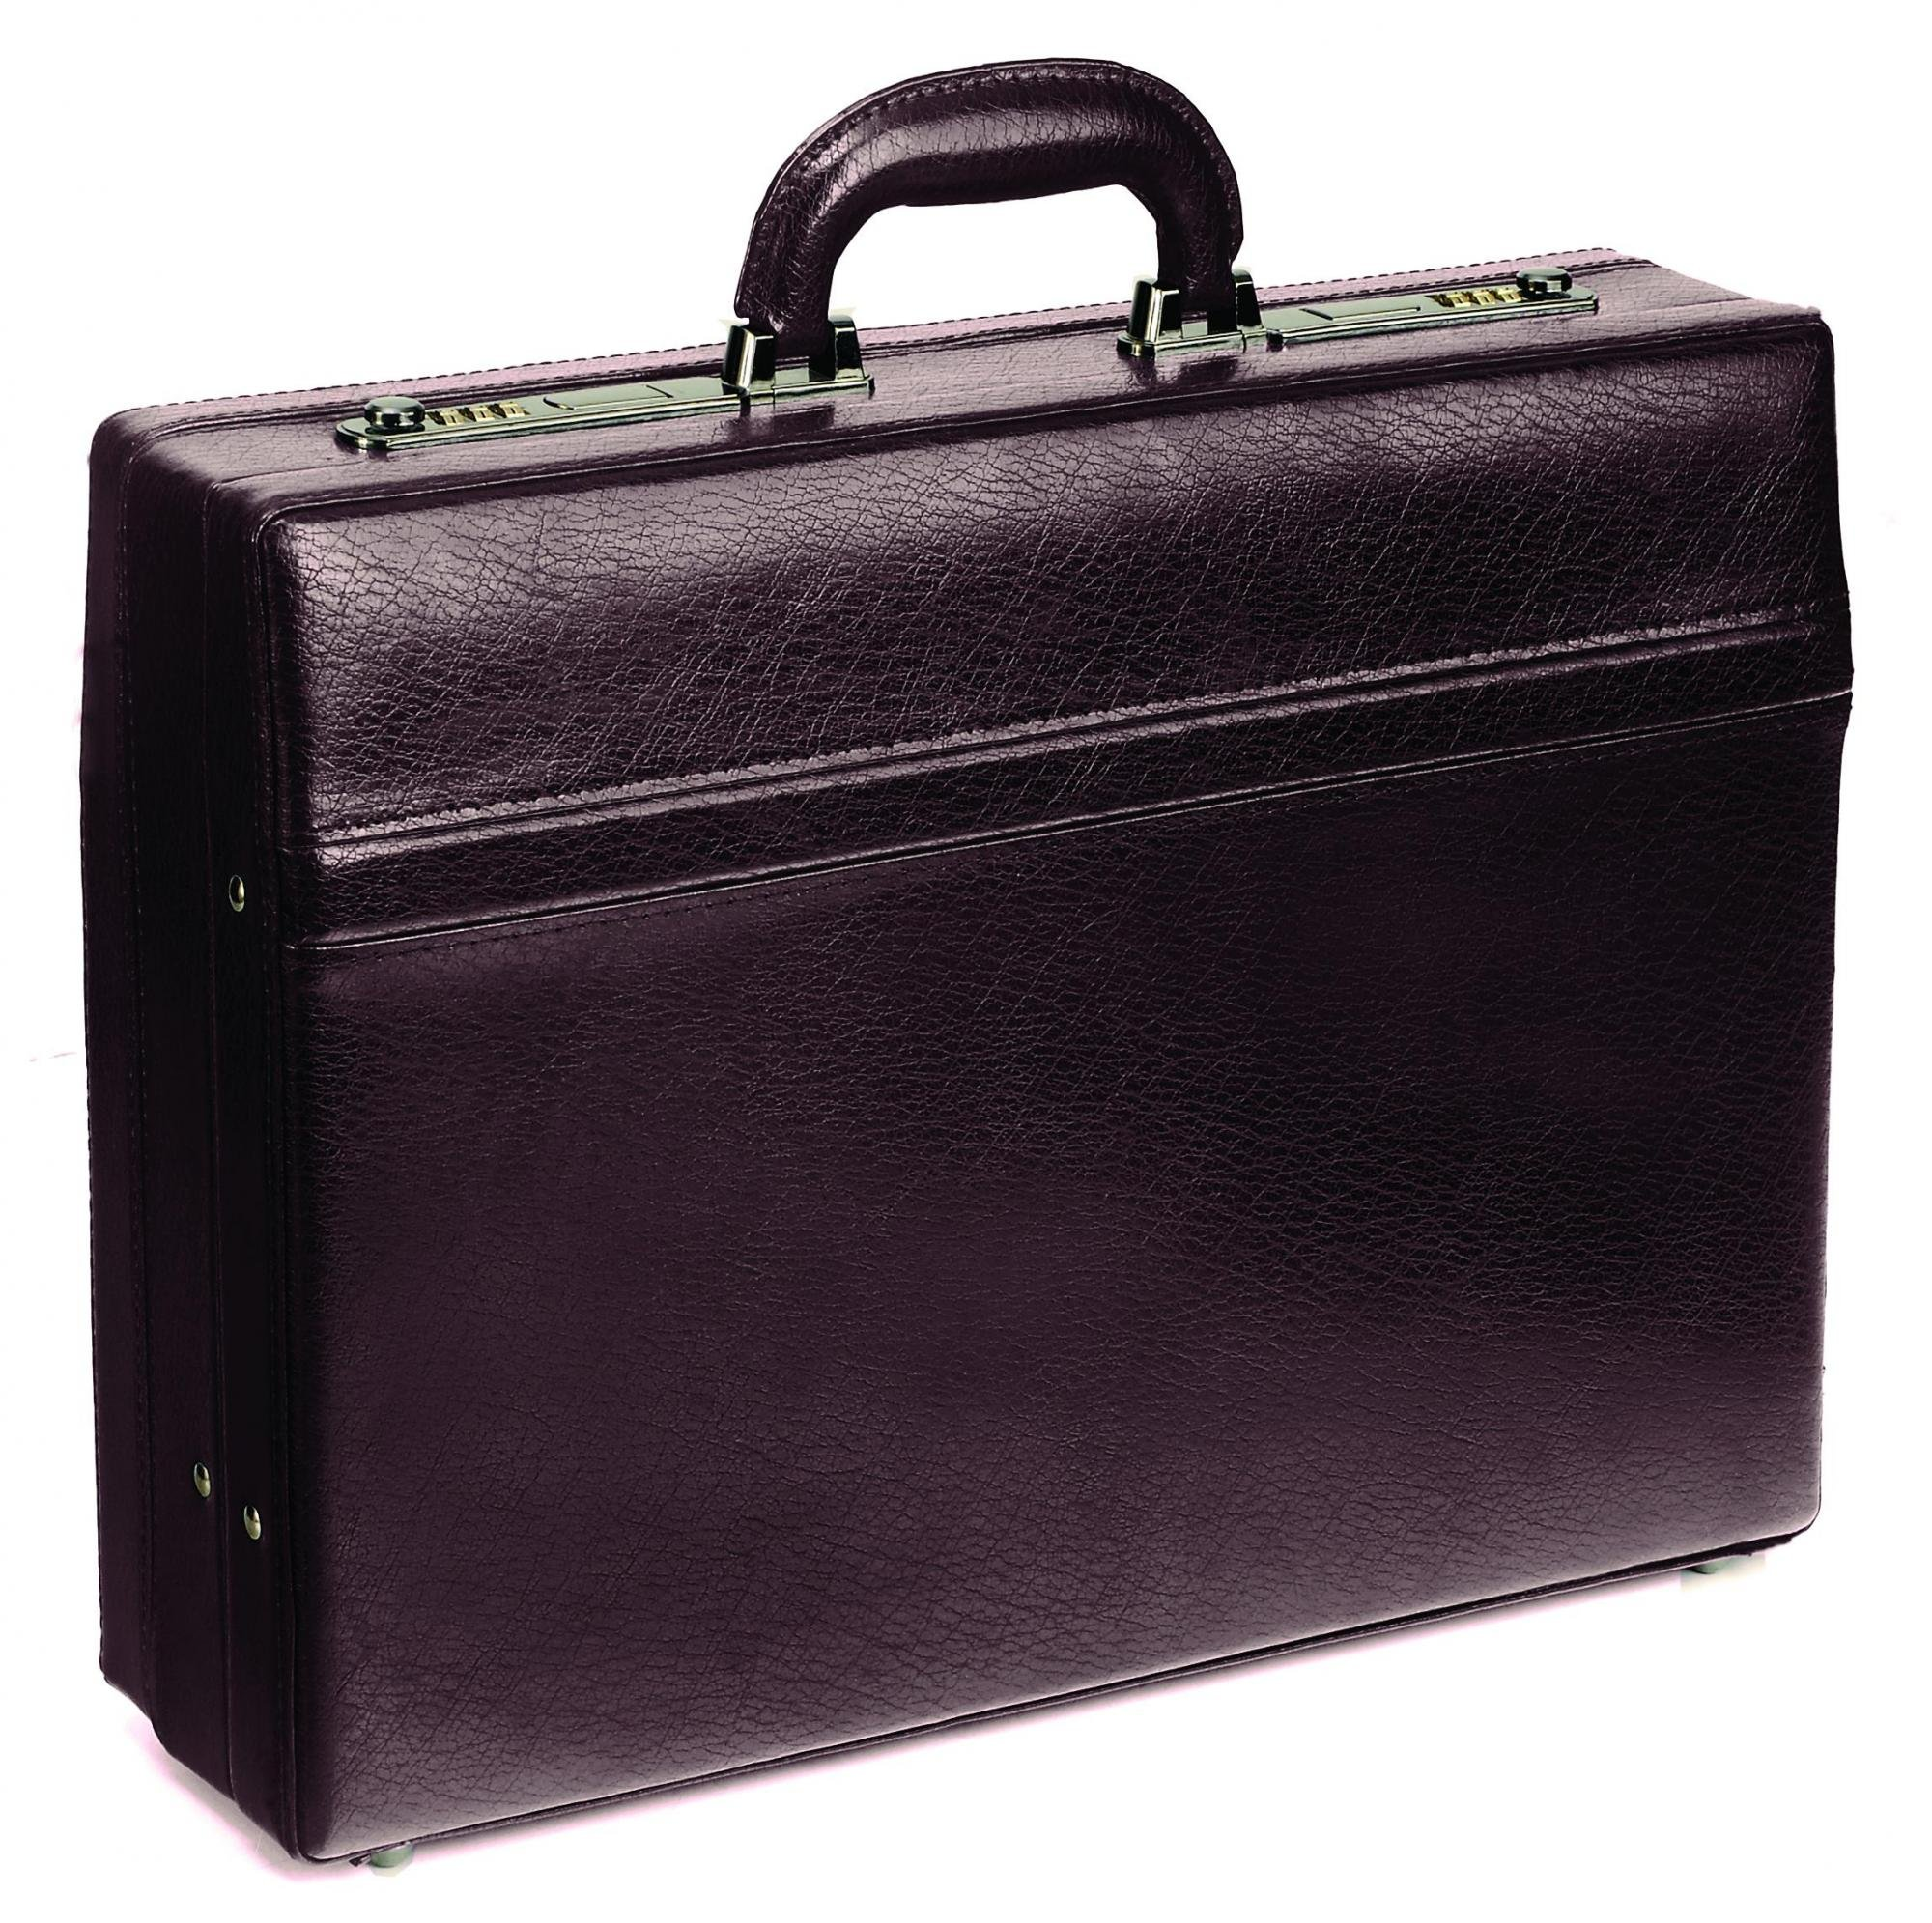 Mancini 4'' Leather Expandable Attache Case - Burgundy by Mancini Leather Goods